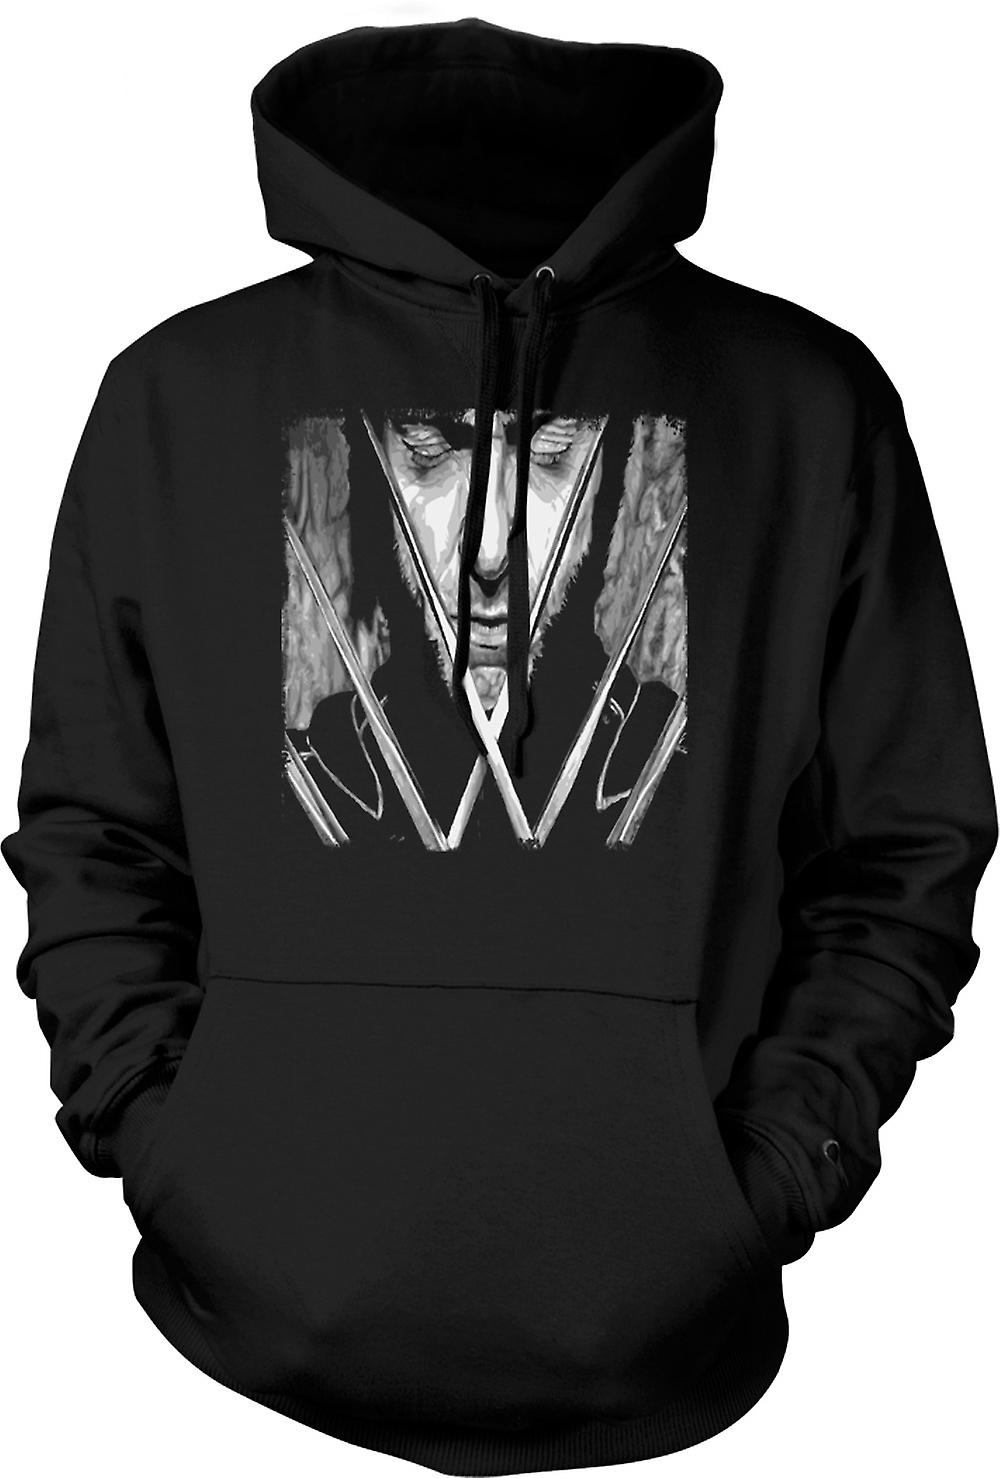 Kids Hoodie - X Men Wolverine - BW - Pop Art